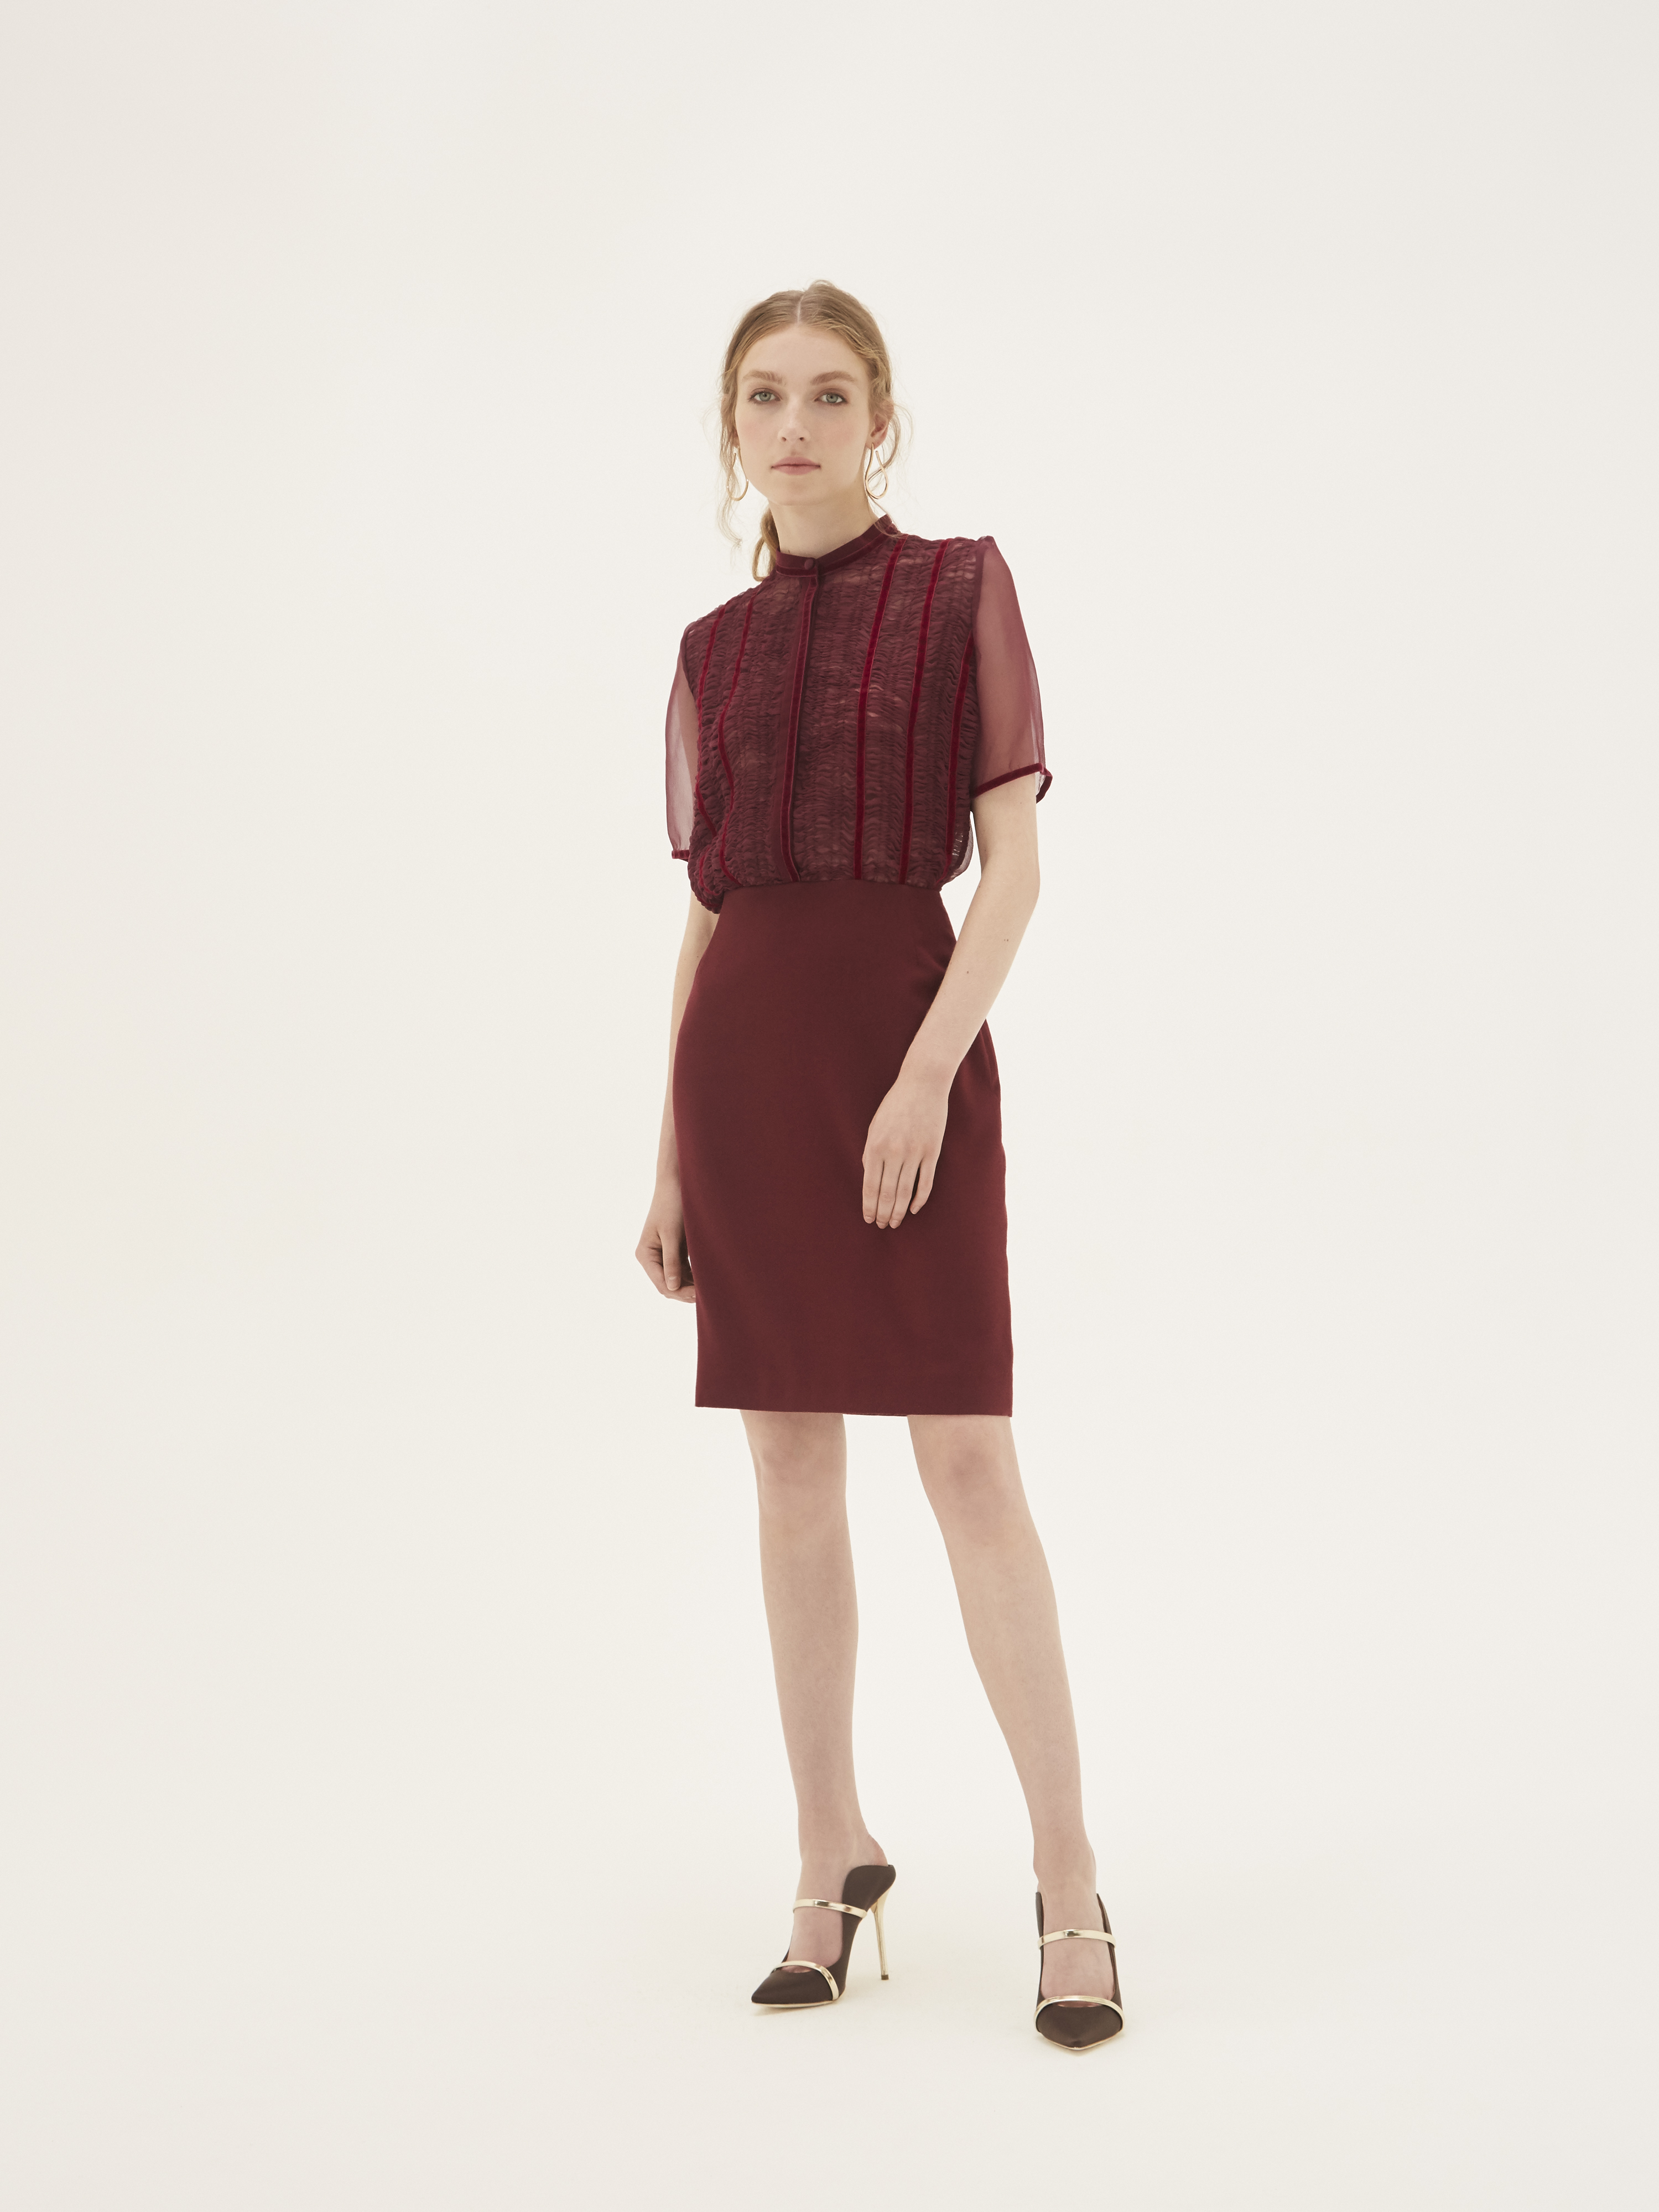 Orenda Dress by Bozena Jankowska on curated-crowd.com